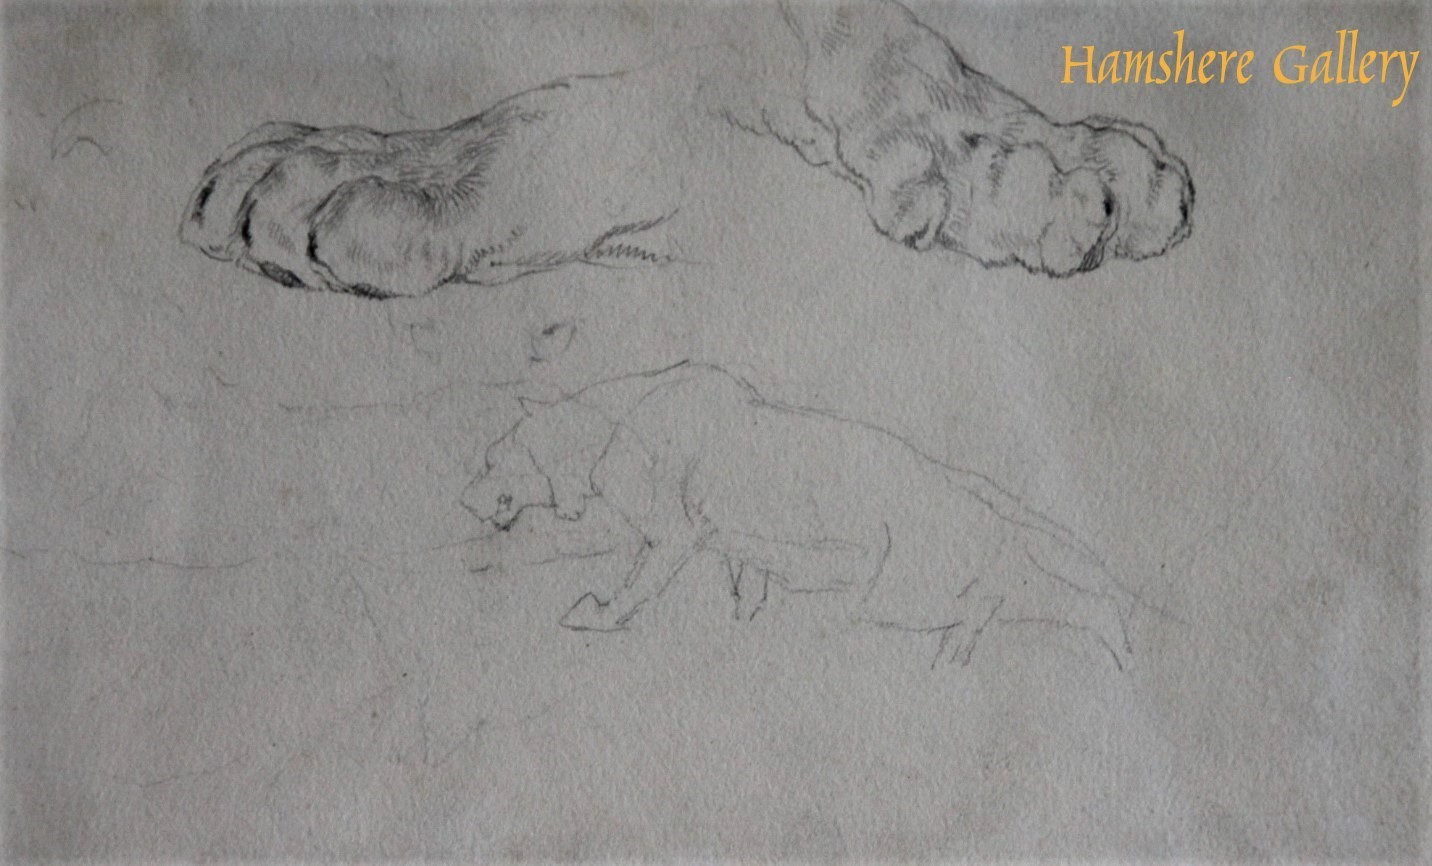 Click to see full size: A pencil study of tiger's paws and a tiger by Sir Edwin Henry Landseer R.A. Trafalgar Square- A pencil study of tiger's paws and a tiger by Sir Edwin Henry Landseer R.A. Trafalgar Square